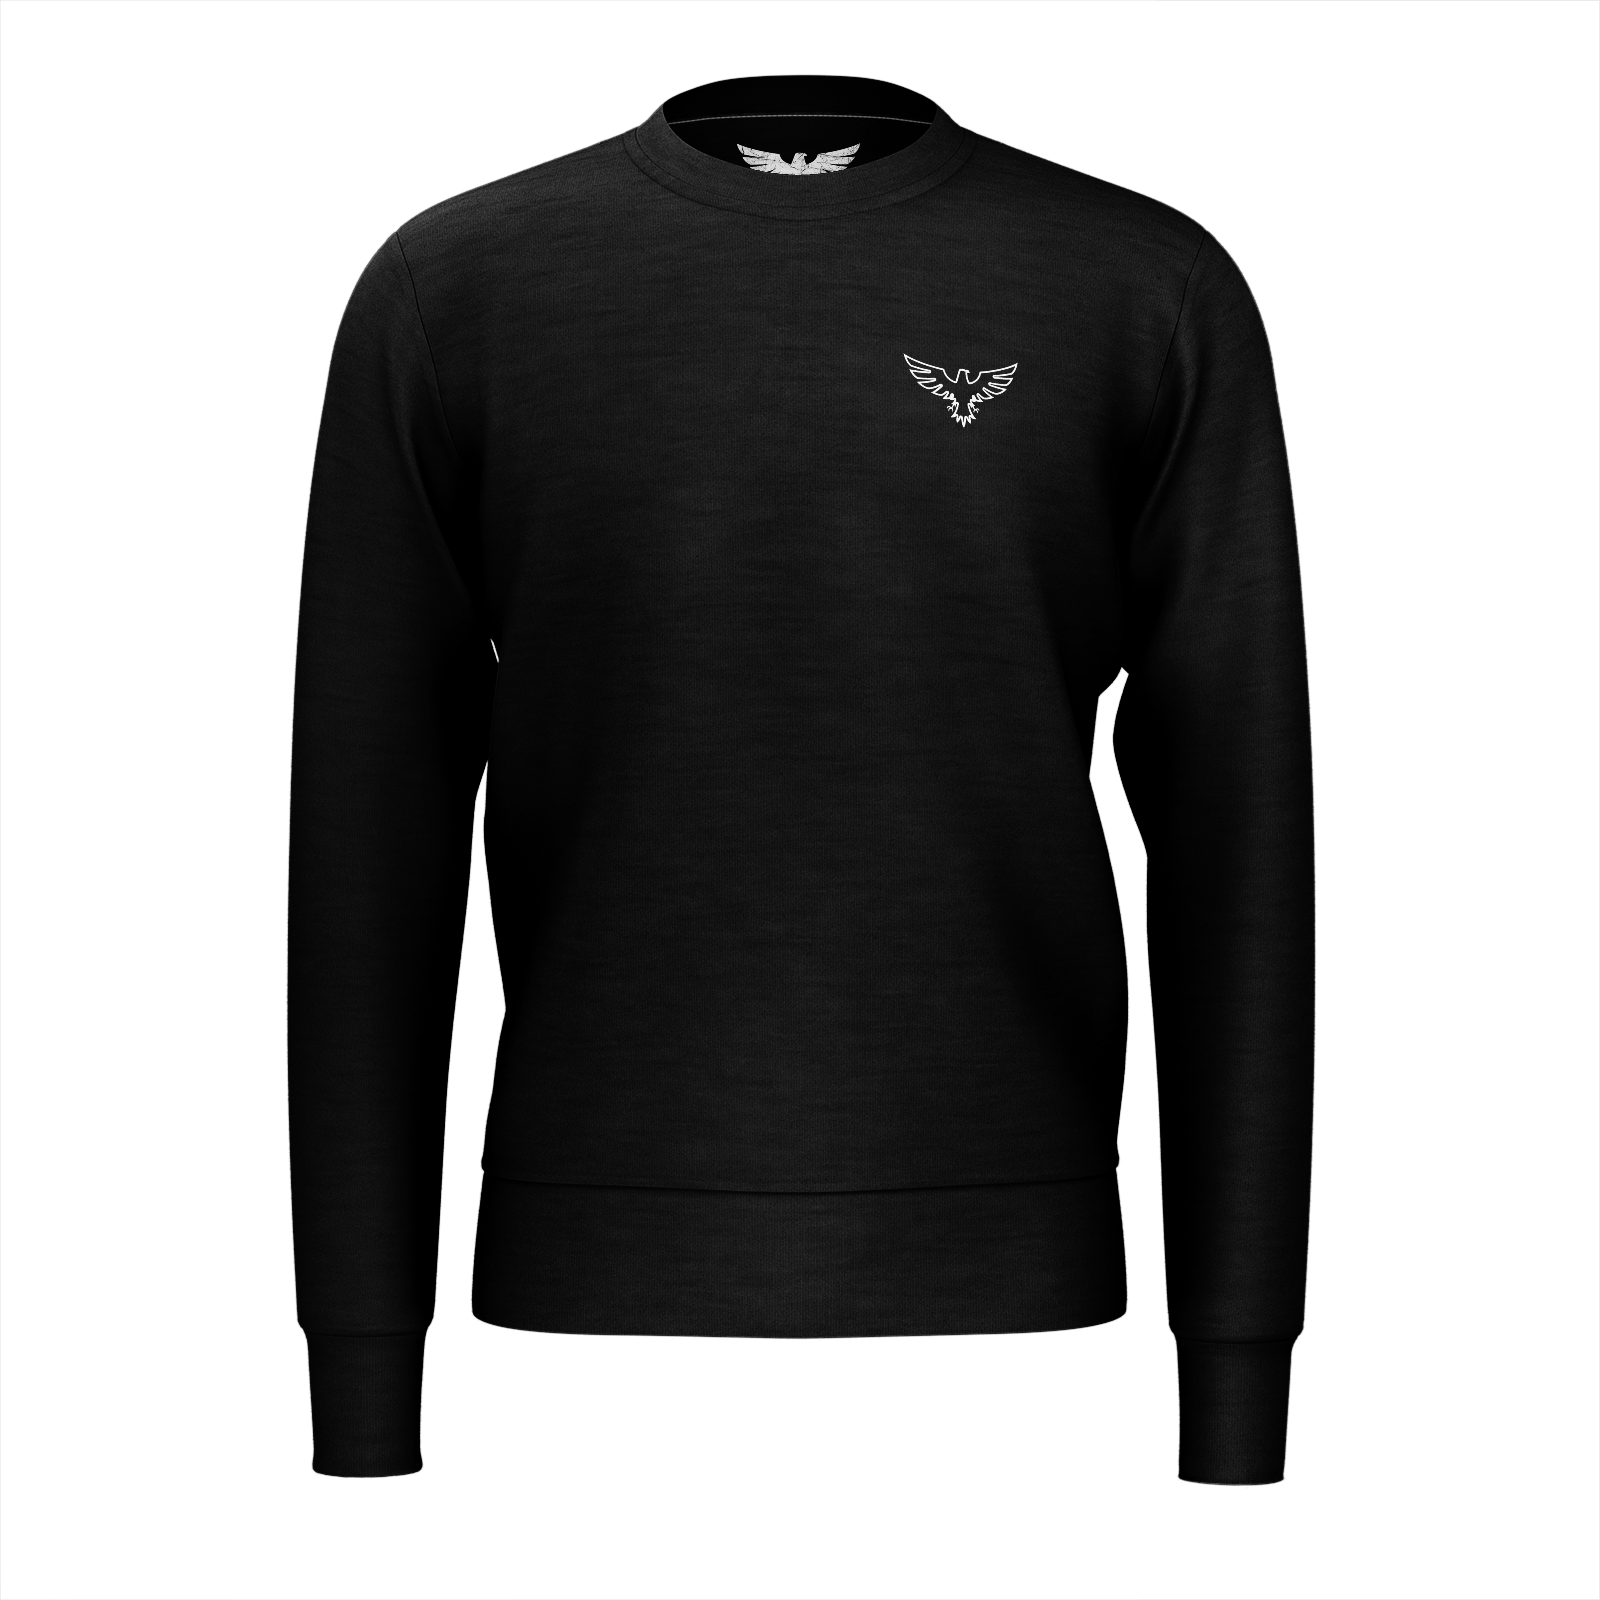 Men's Supply Co. Sustainable Solid Black Long Sleeve Crewneck Sweatshirt - Find Your Coast Supply Co.